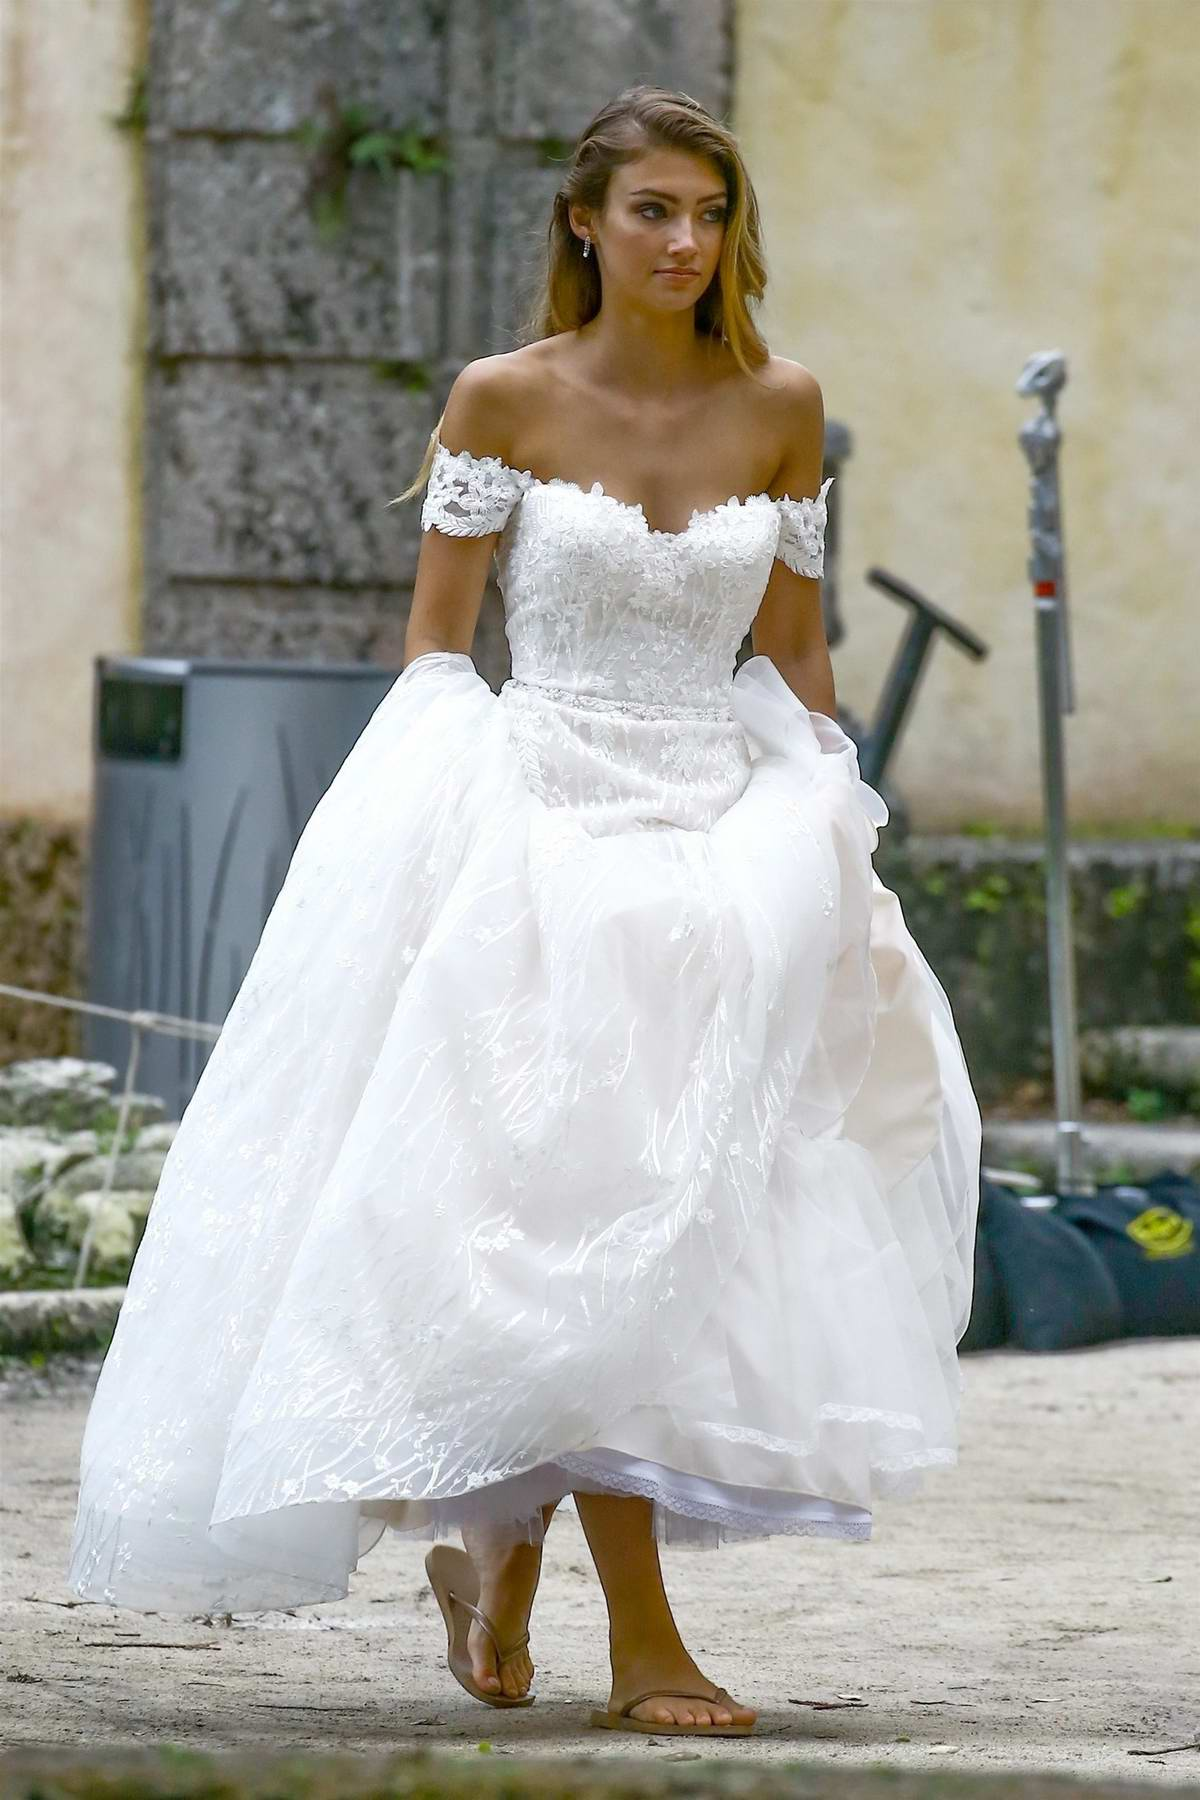 Lorena Rae pose for the camera in a wedding dress during a photoshoot at a house in Miami beach, Florida